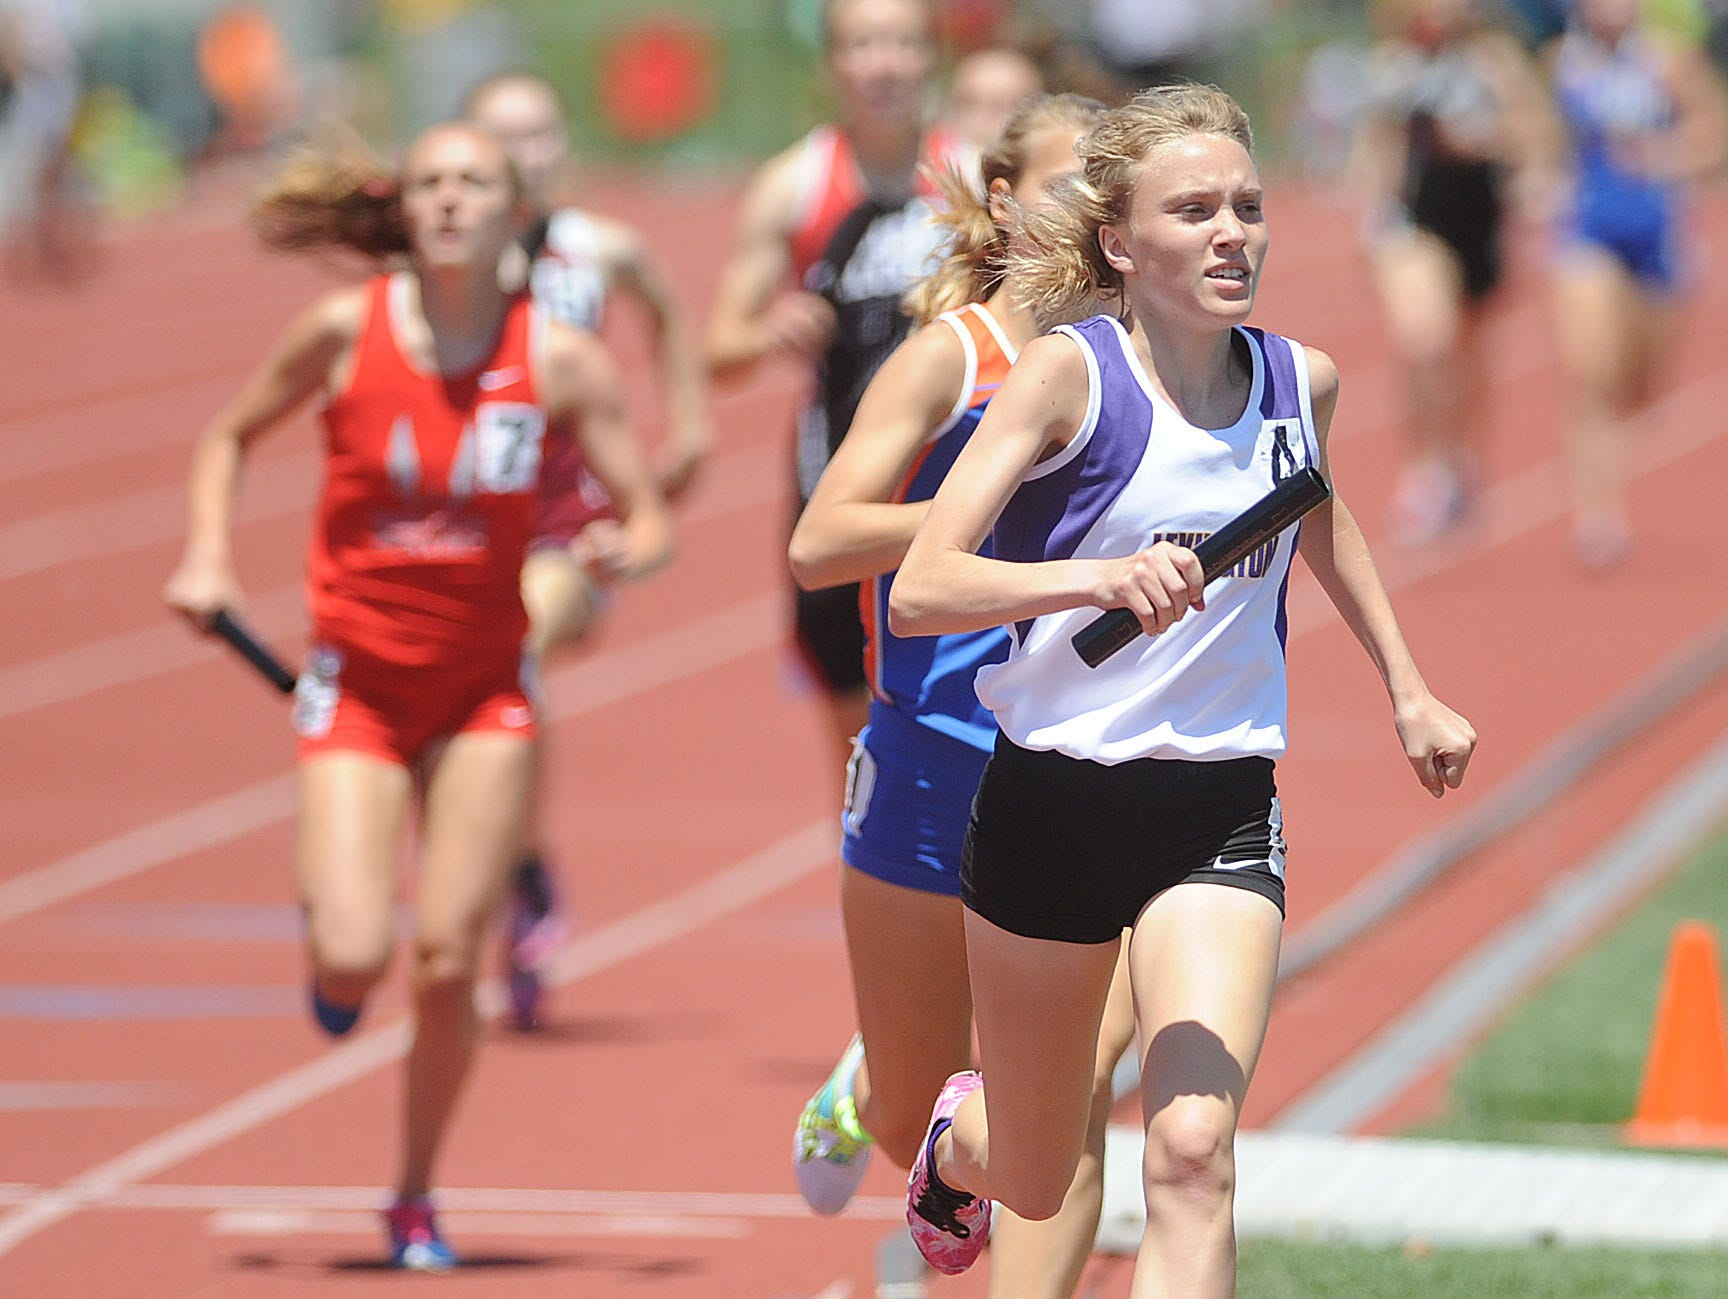 Lex's Dominique Clairmonte, competing in the 4 x 800 meter relay at the 2014 state meet, is the reigning state champion in cross country and the indoor metric mile and two-mile runs.